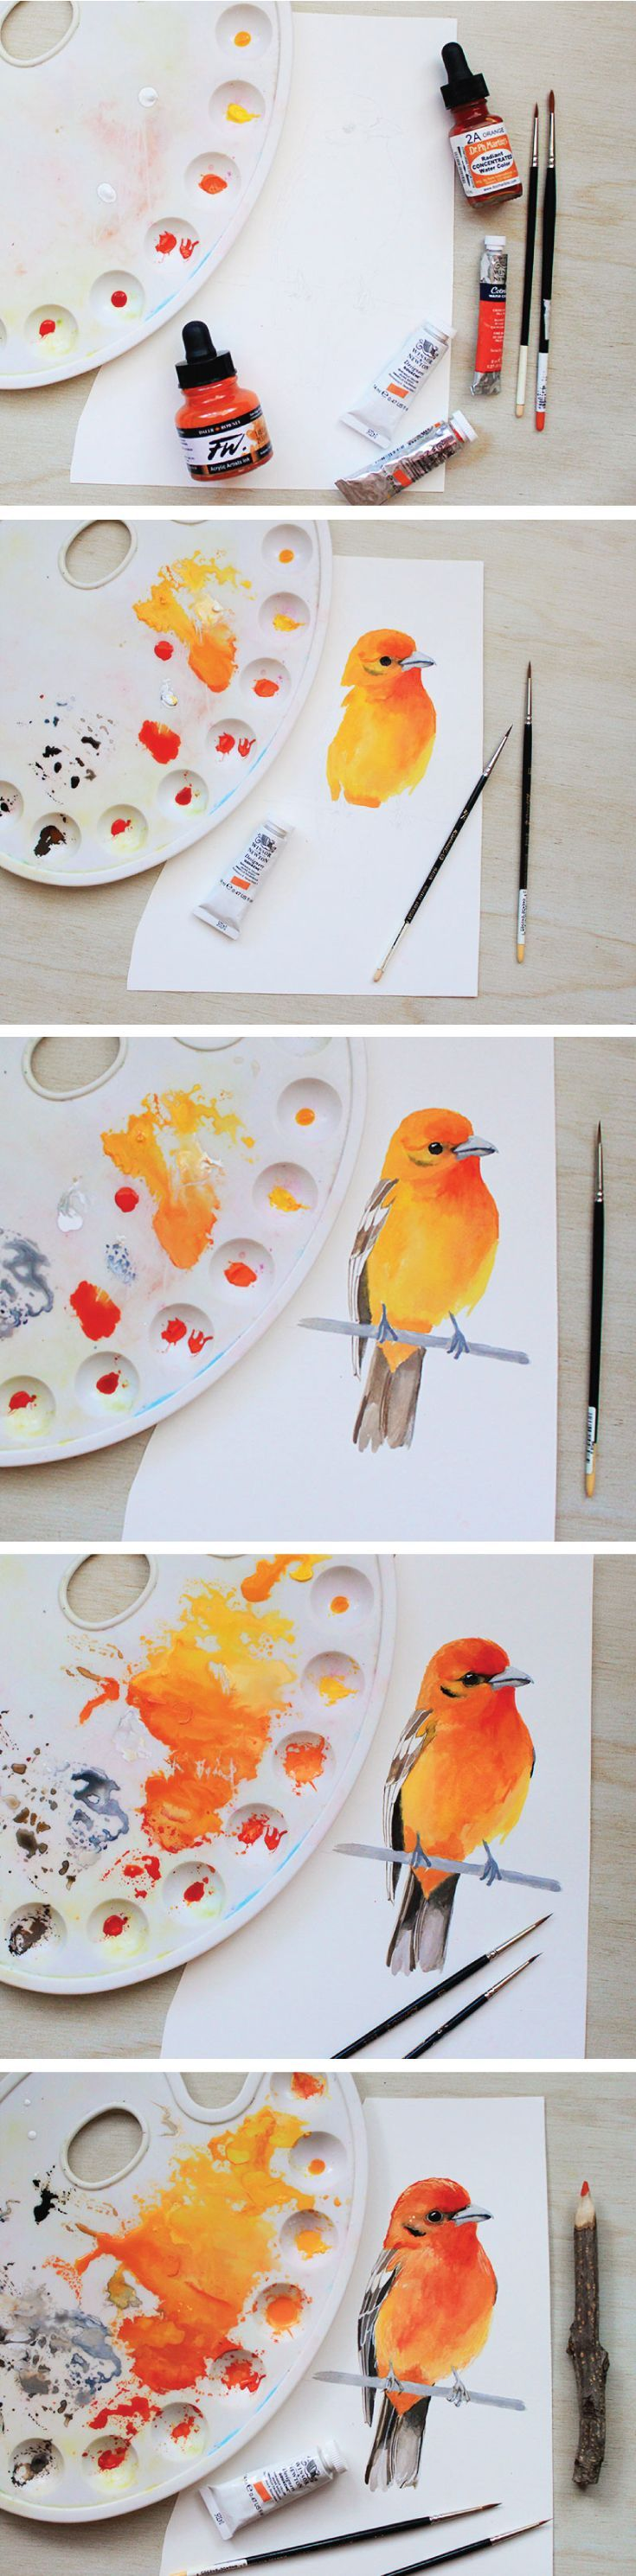 The Evolution Of A Bird Painting How I Paint And What Materials I